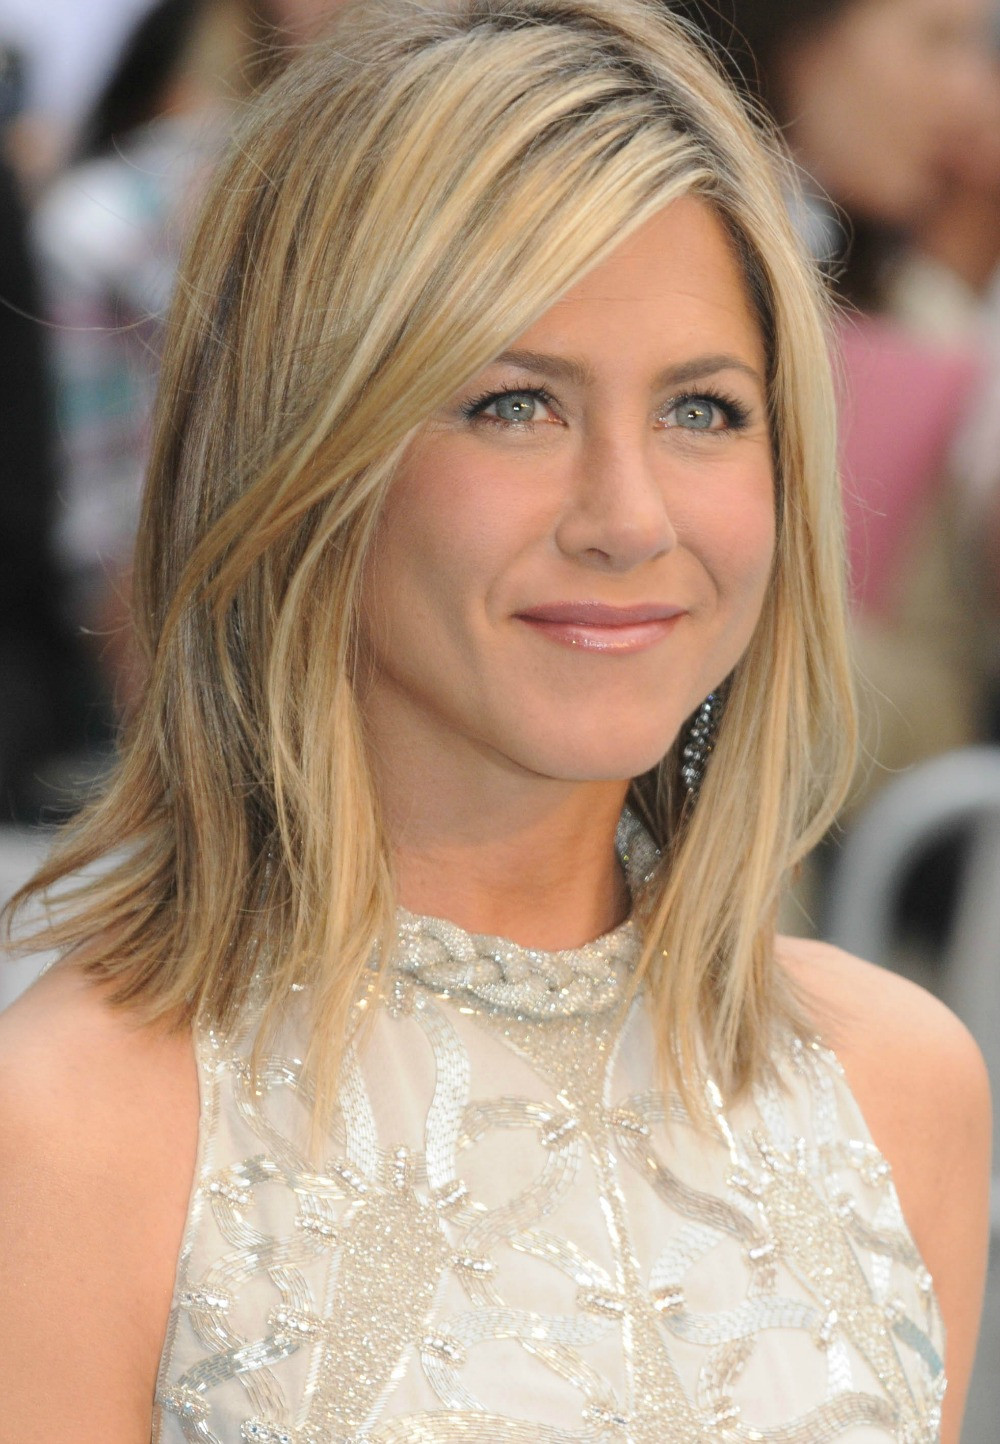 Medium Haircuts Women  25 Medium Length Hairstyles You ll Want to Copy Now